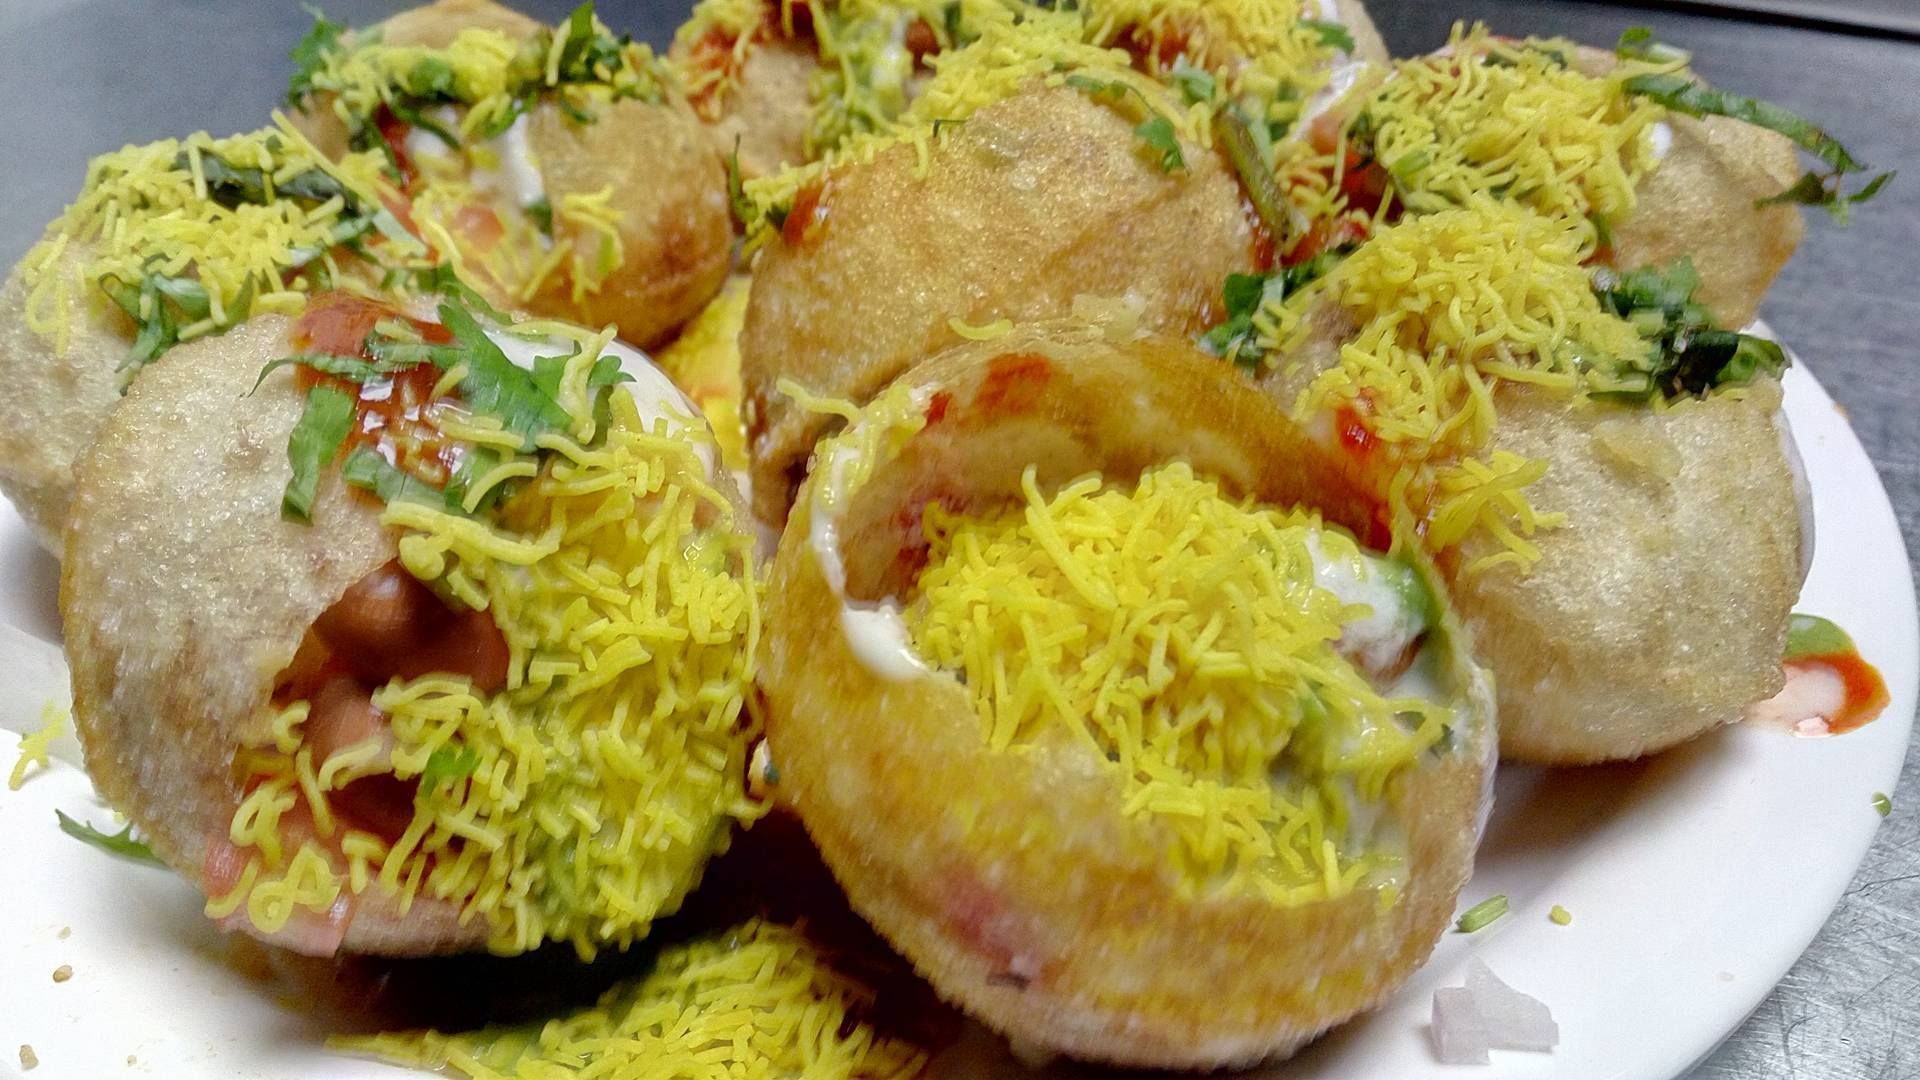 Pani Puri A Popular Street Food Of Vadodara Gujarat India Where Crisp Fried Dough B Greens Restaurant Best Vegetarian Dishes Dinner Restaurants